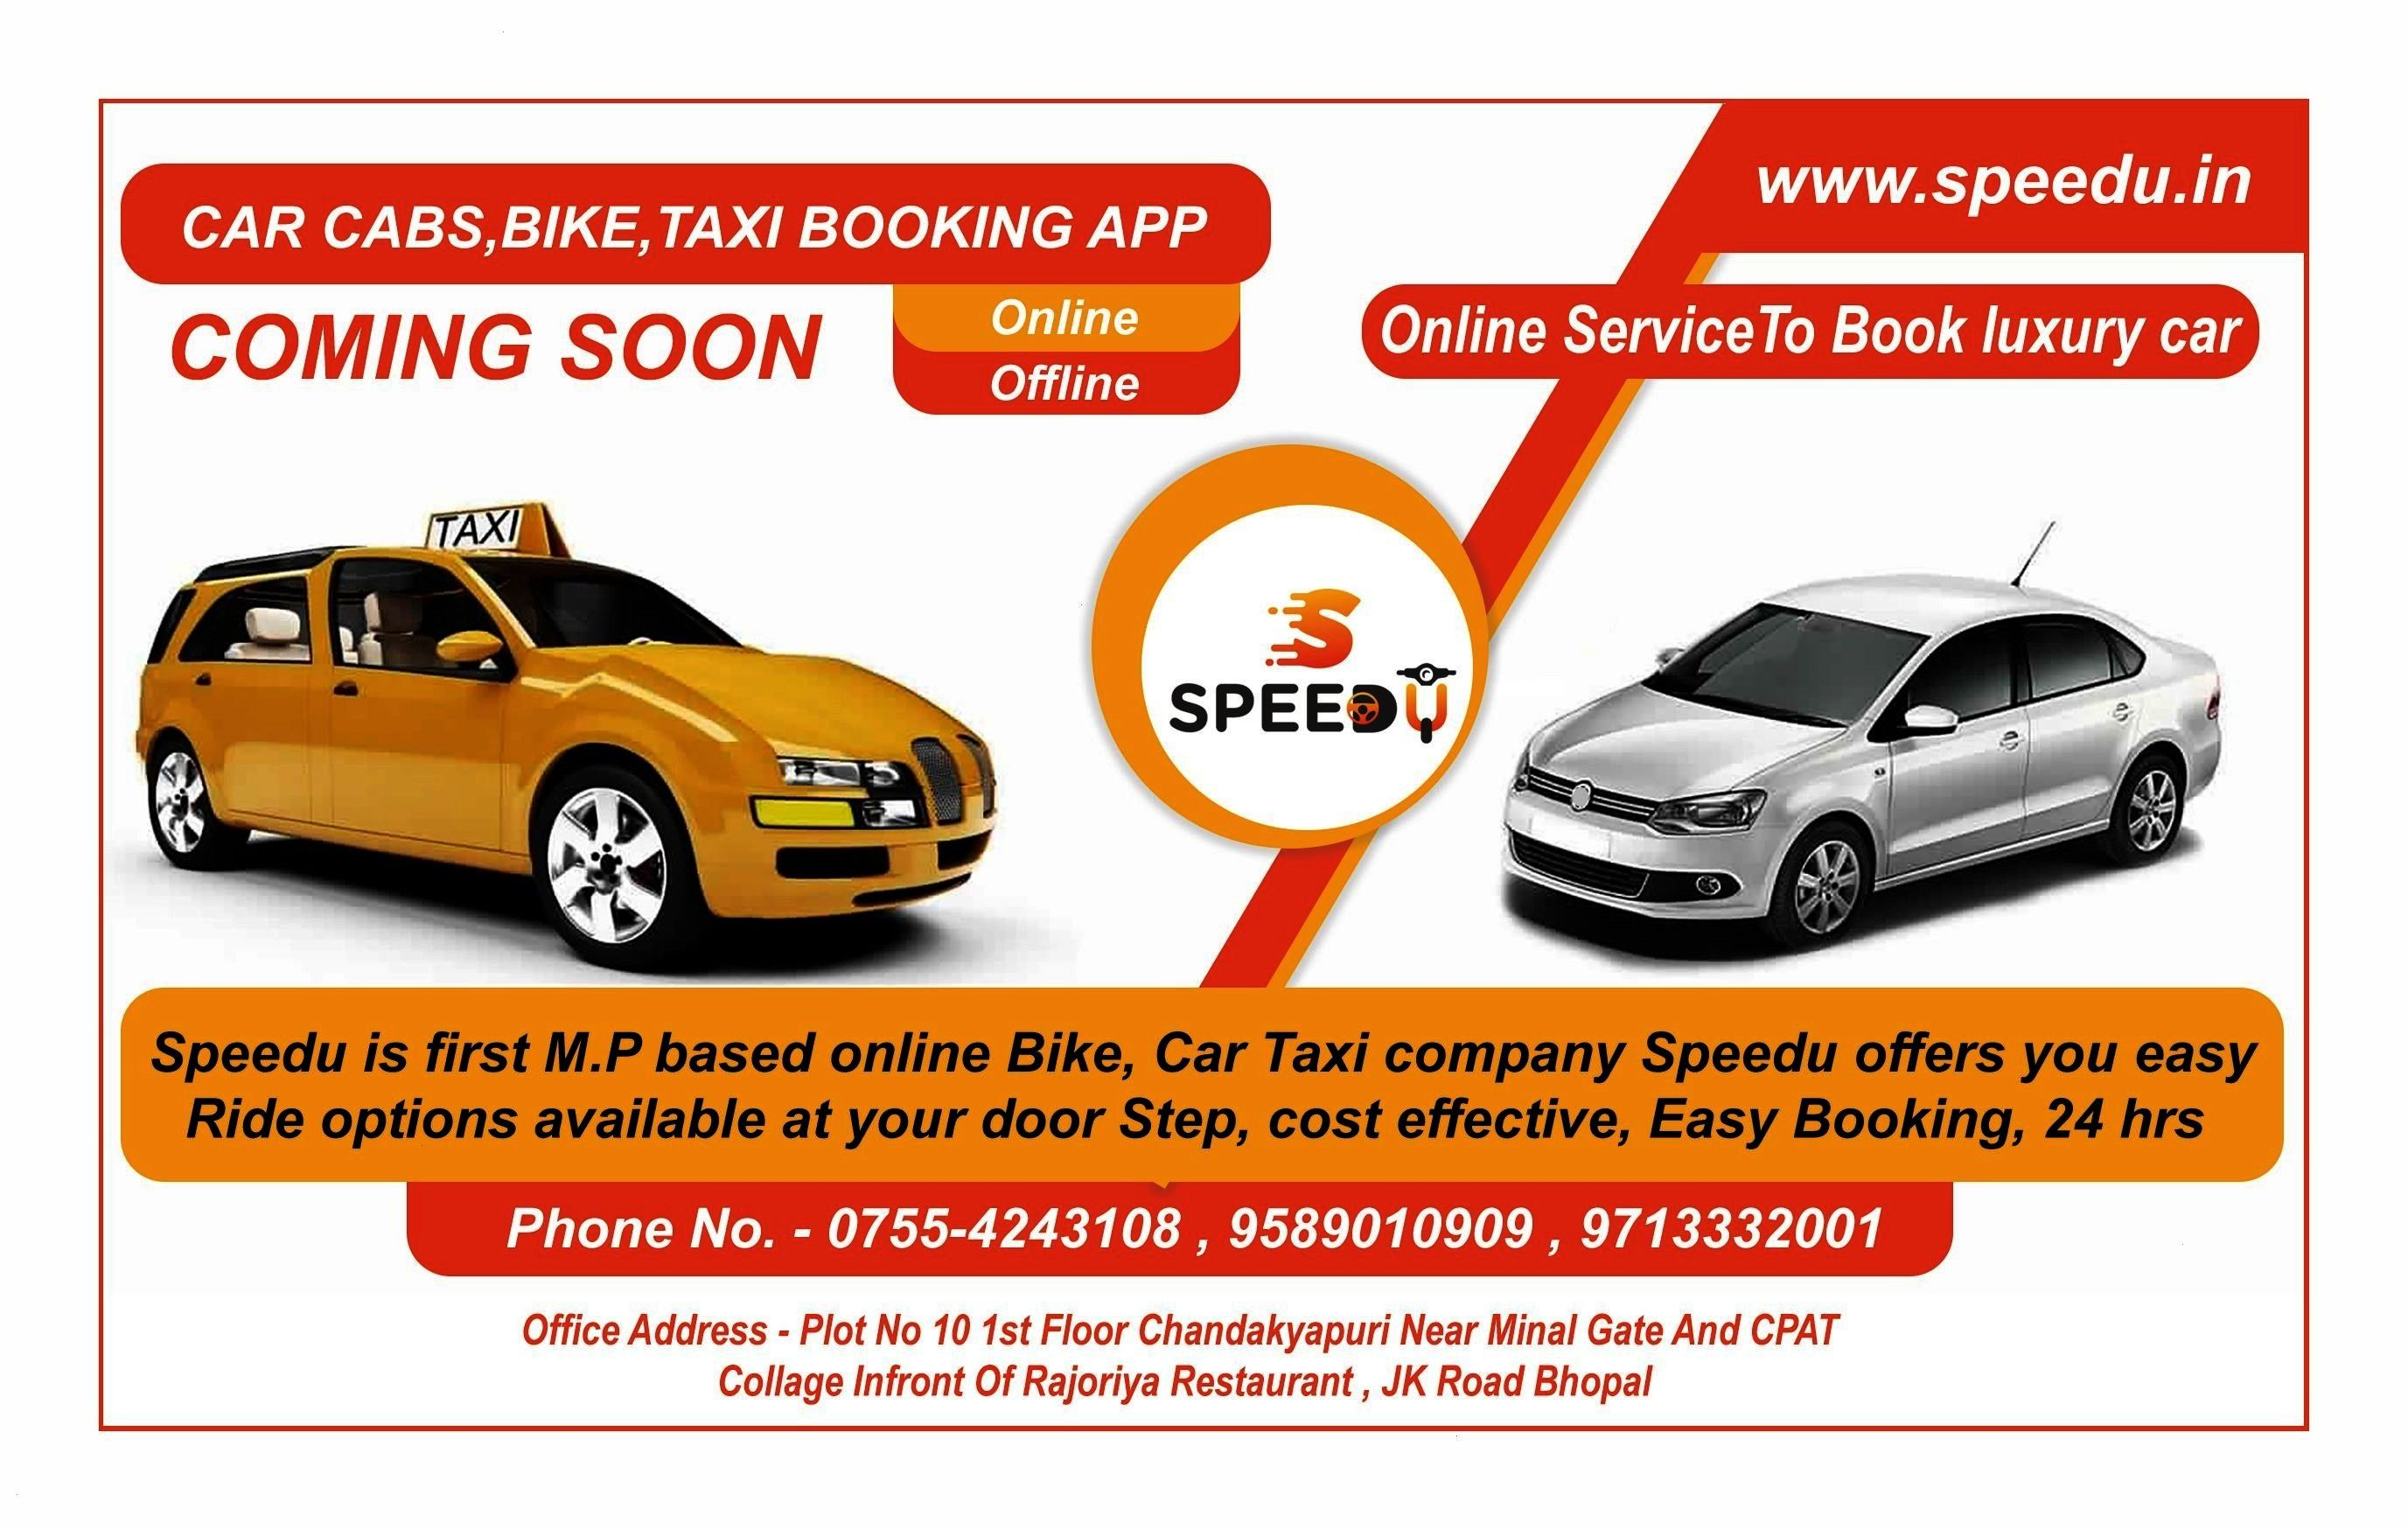 is first MP based SpeedU offers you options at your door Step cost effective Easy Booking 24 hrs serviceSpeedU is first MP based SpeedU offers you options at your door St...